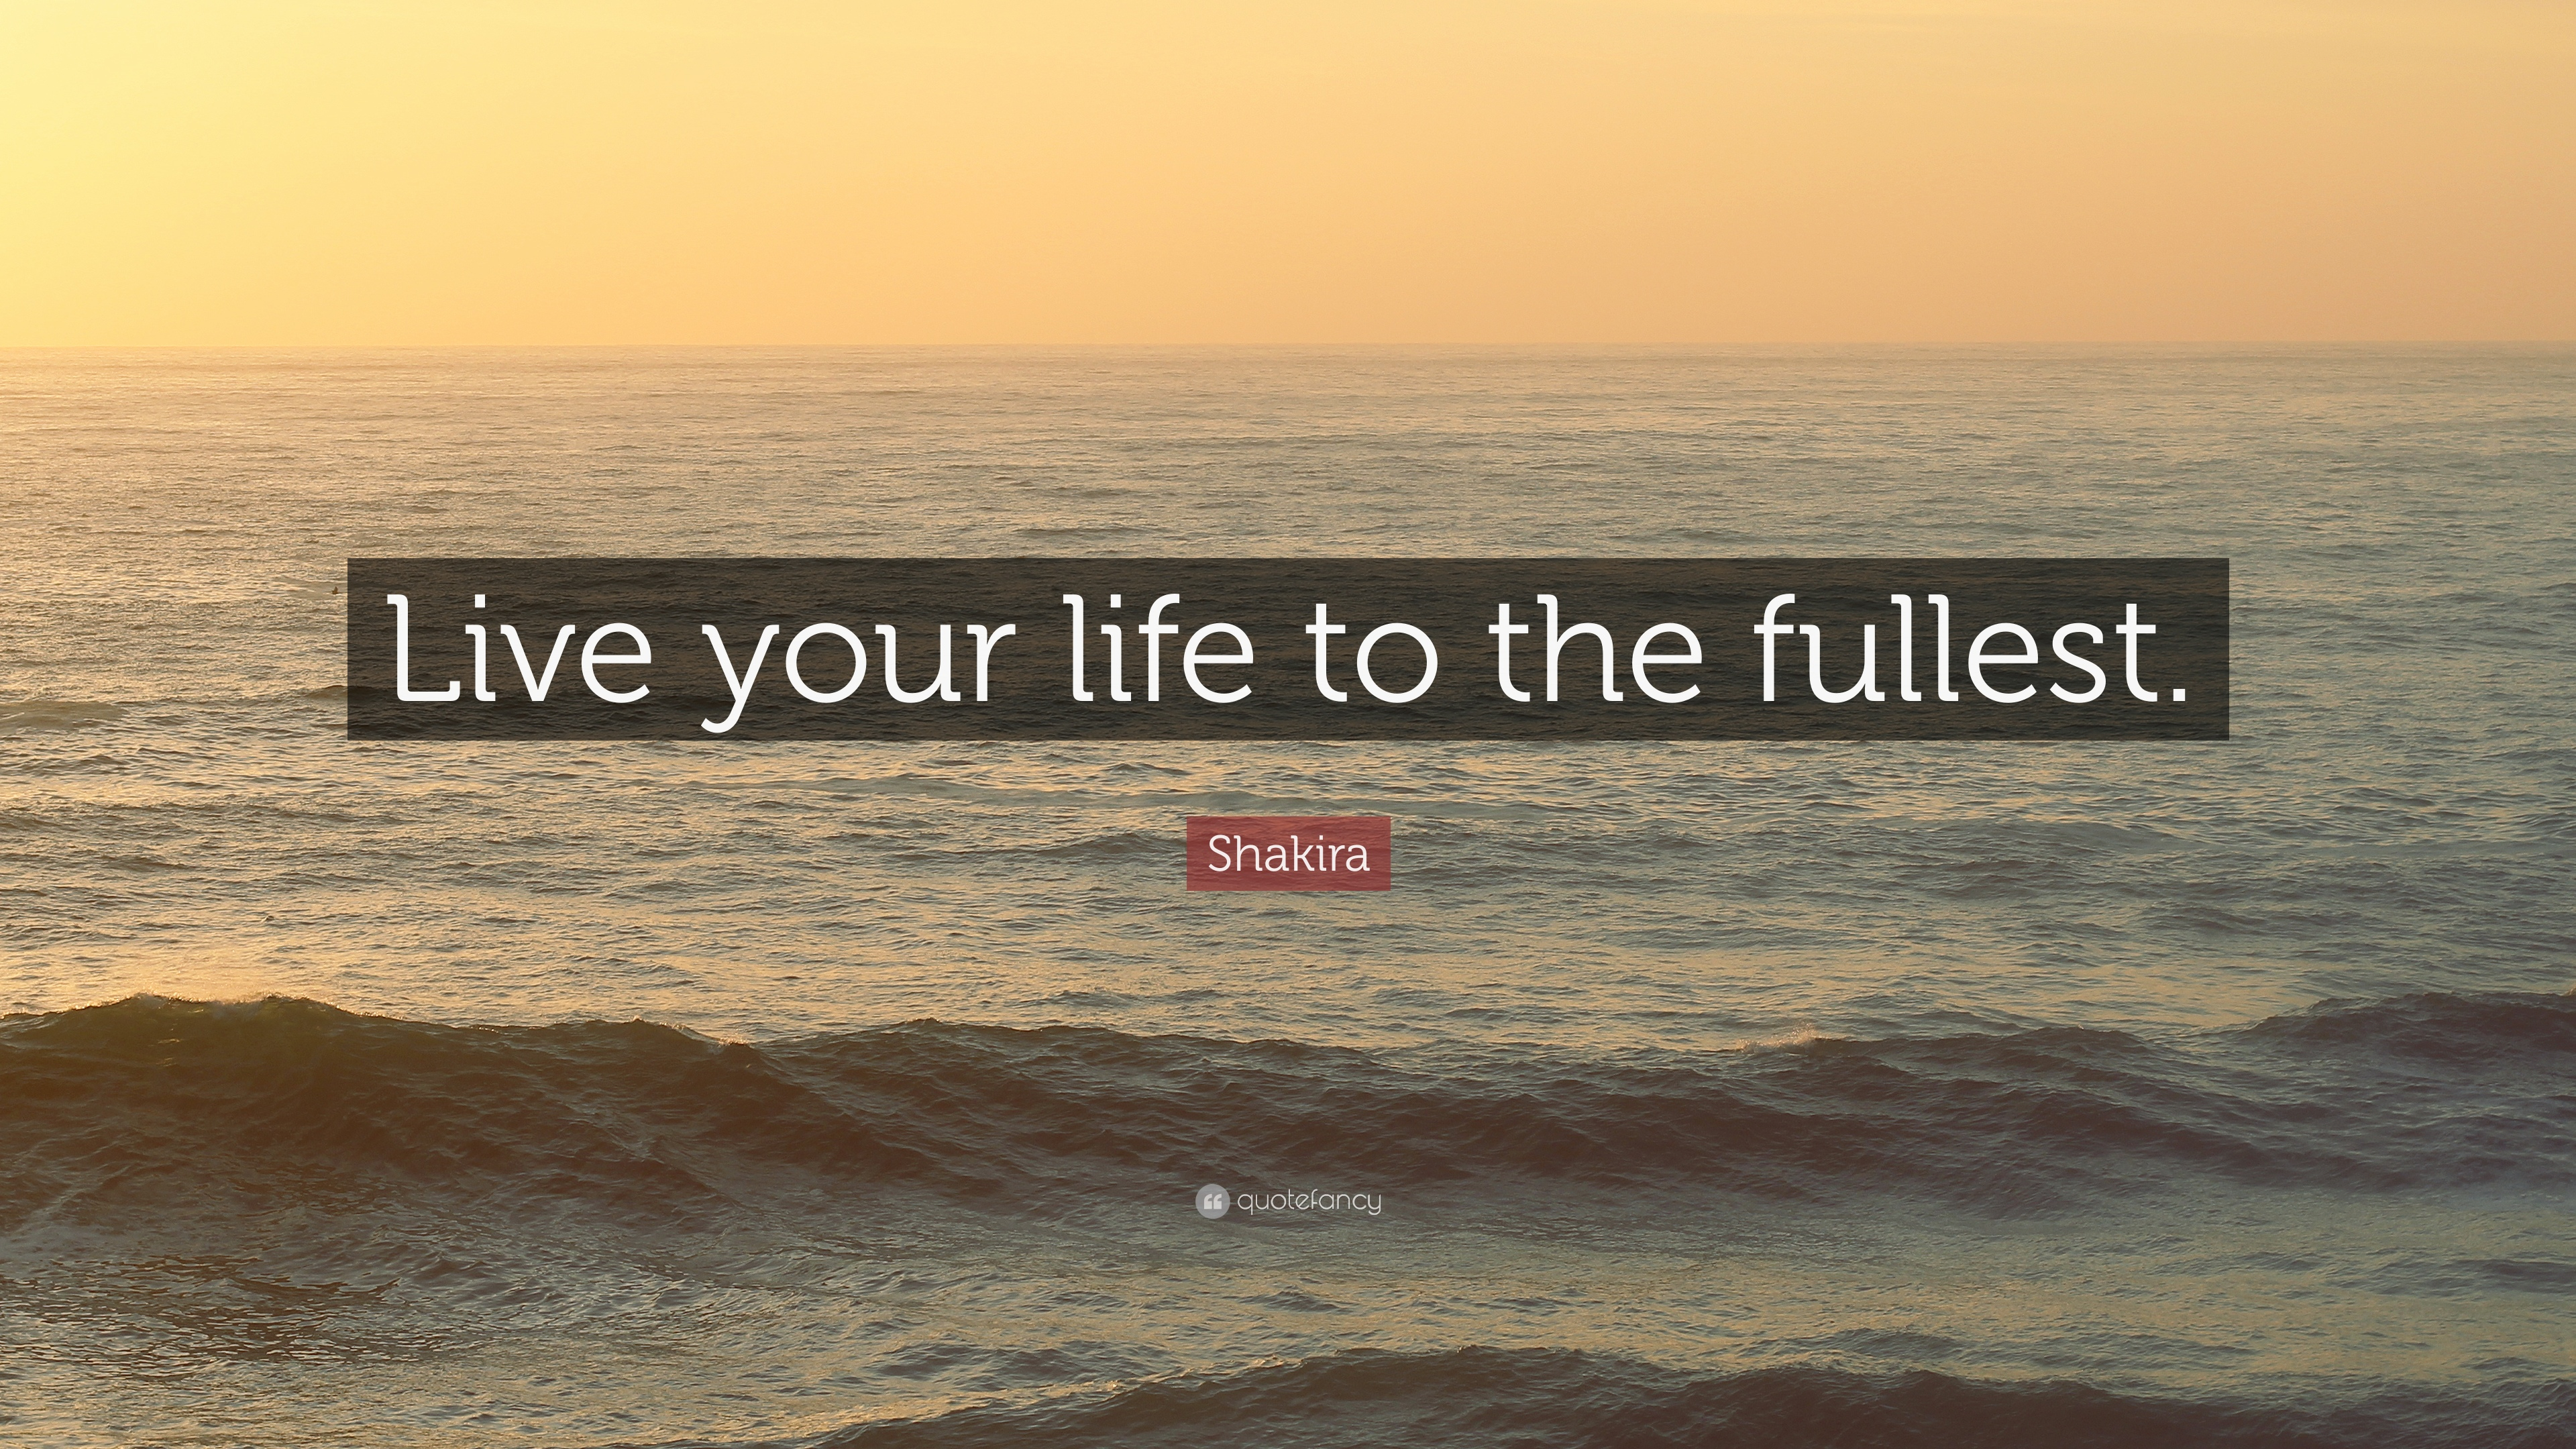 "Live Life To The Fullest Quotes Alluring Shakira Quote ""Live Your Life To The Fullest."" 12 Wallpapers ."